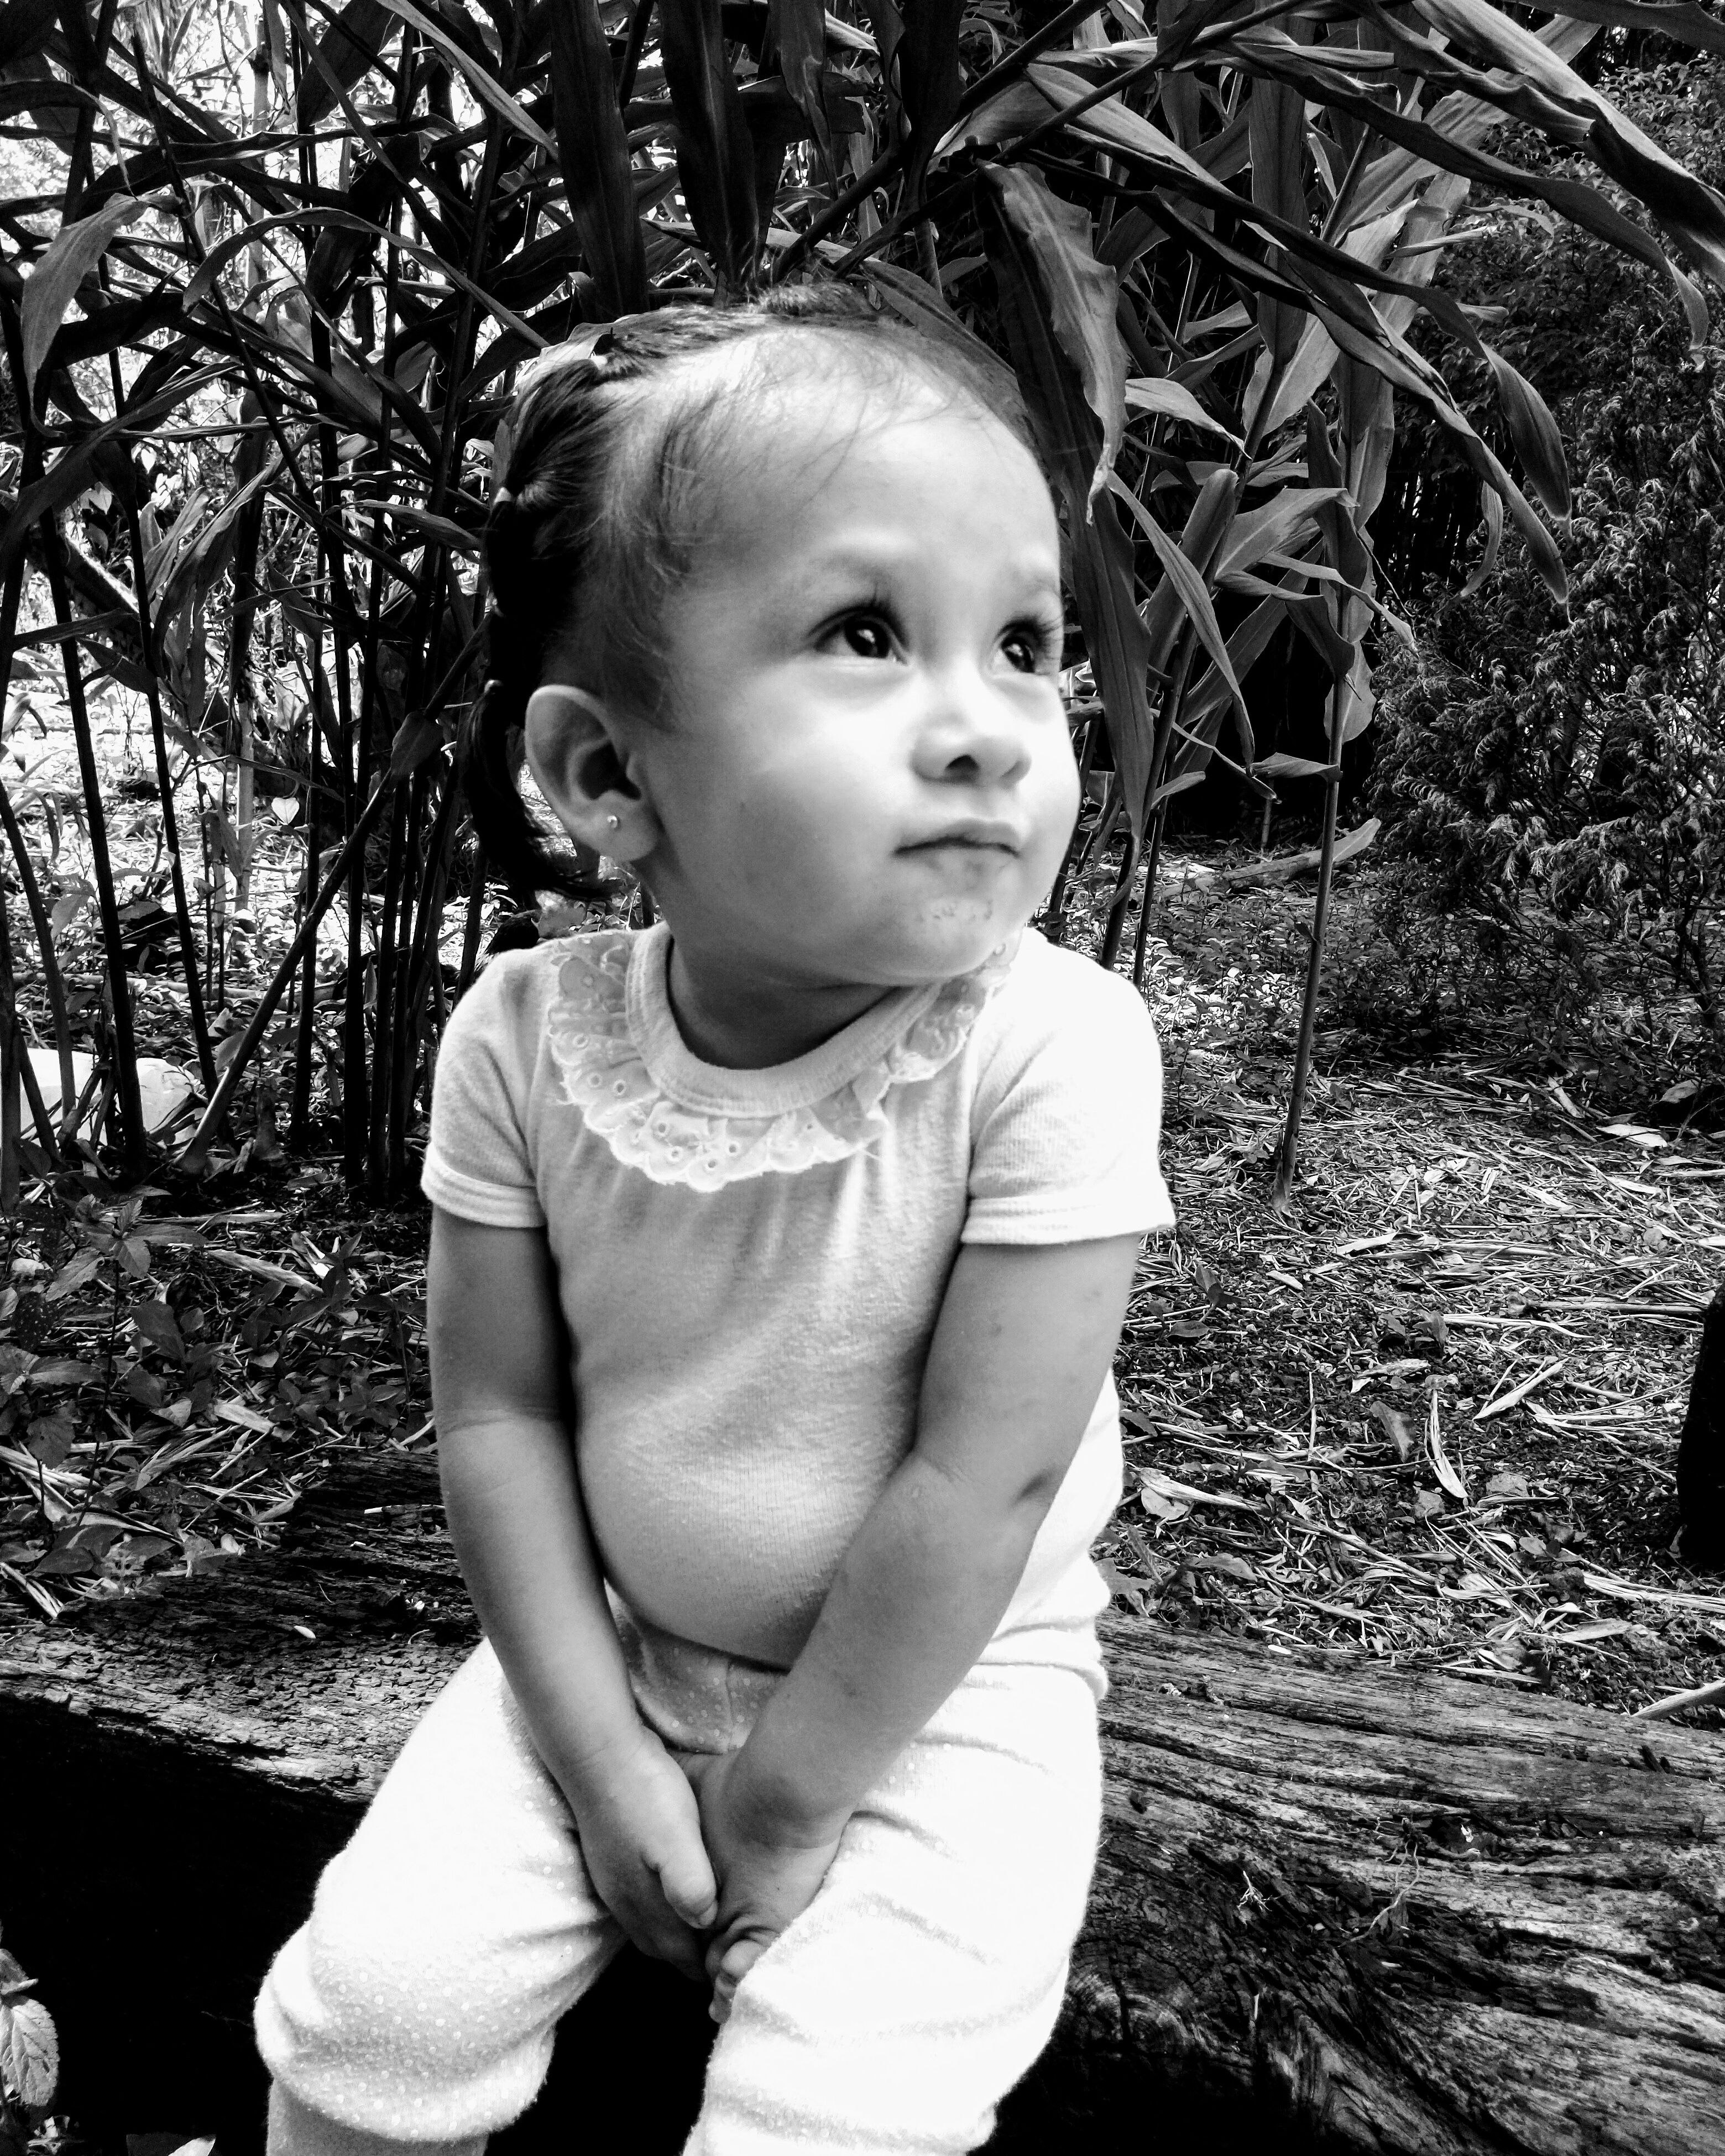 innocence, childhood, cute, baby, sitting, one person, day, outdoors